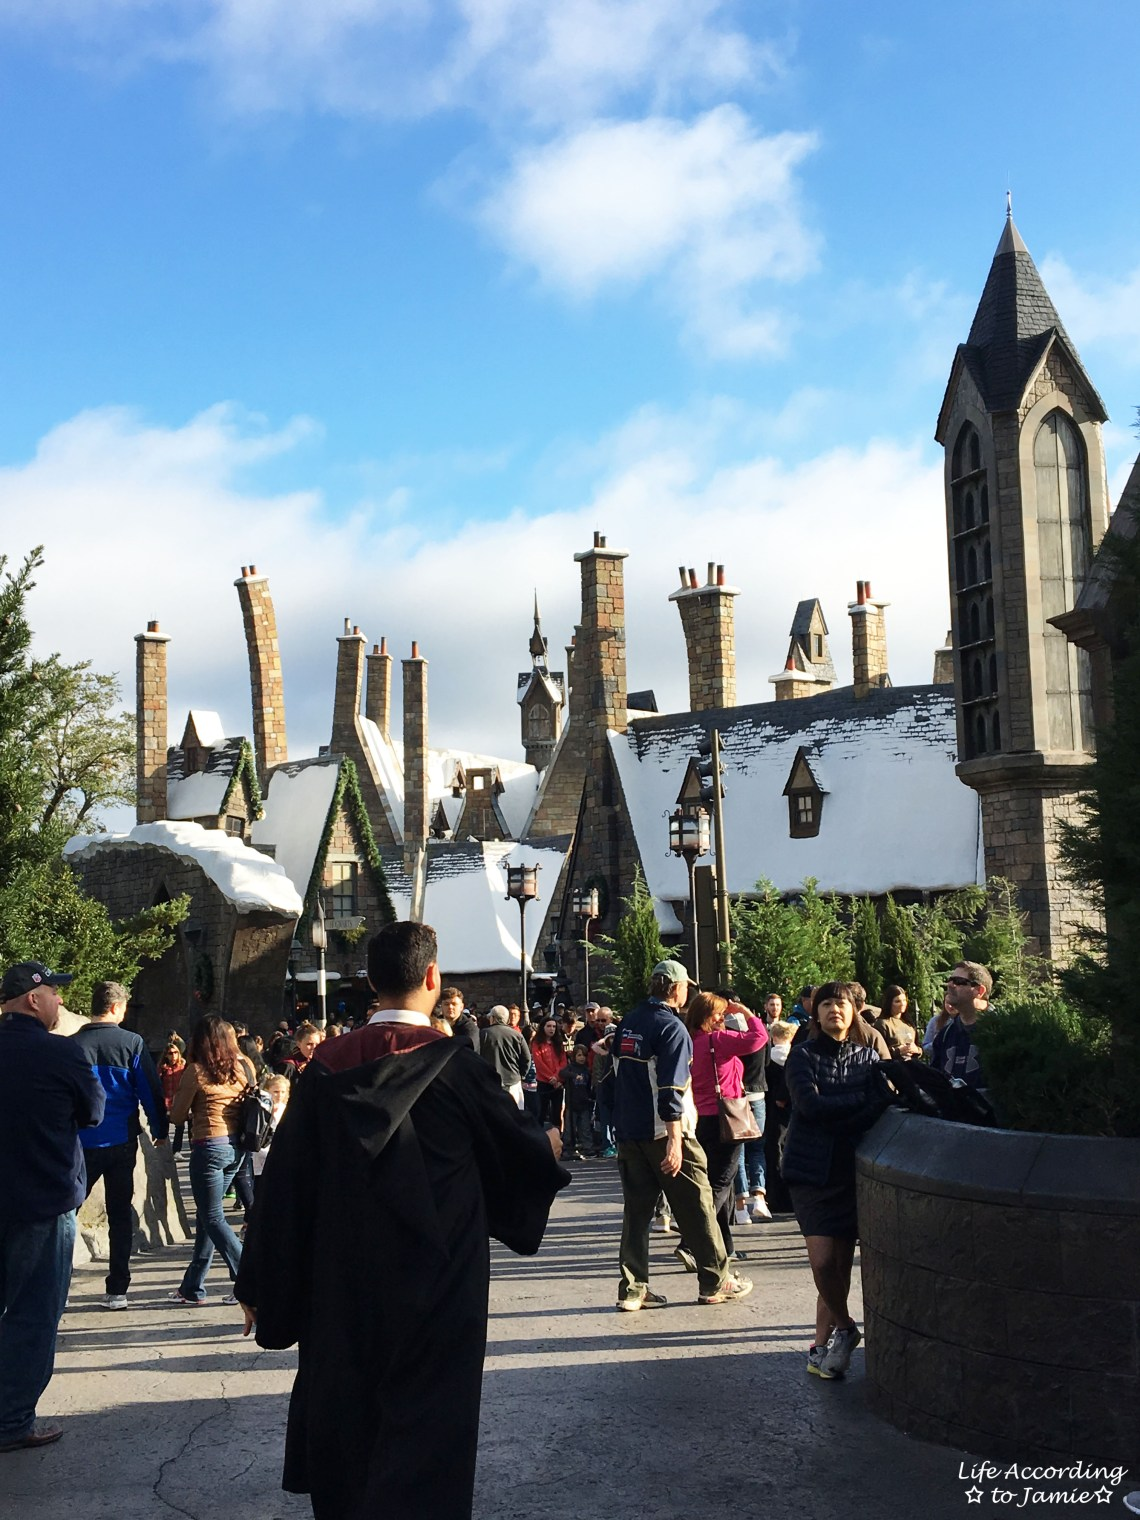 Universal Studios Orlando - Wizarding World of Harry Potter - Hogsmeade